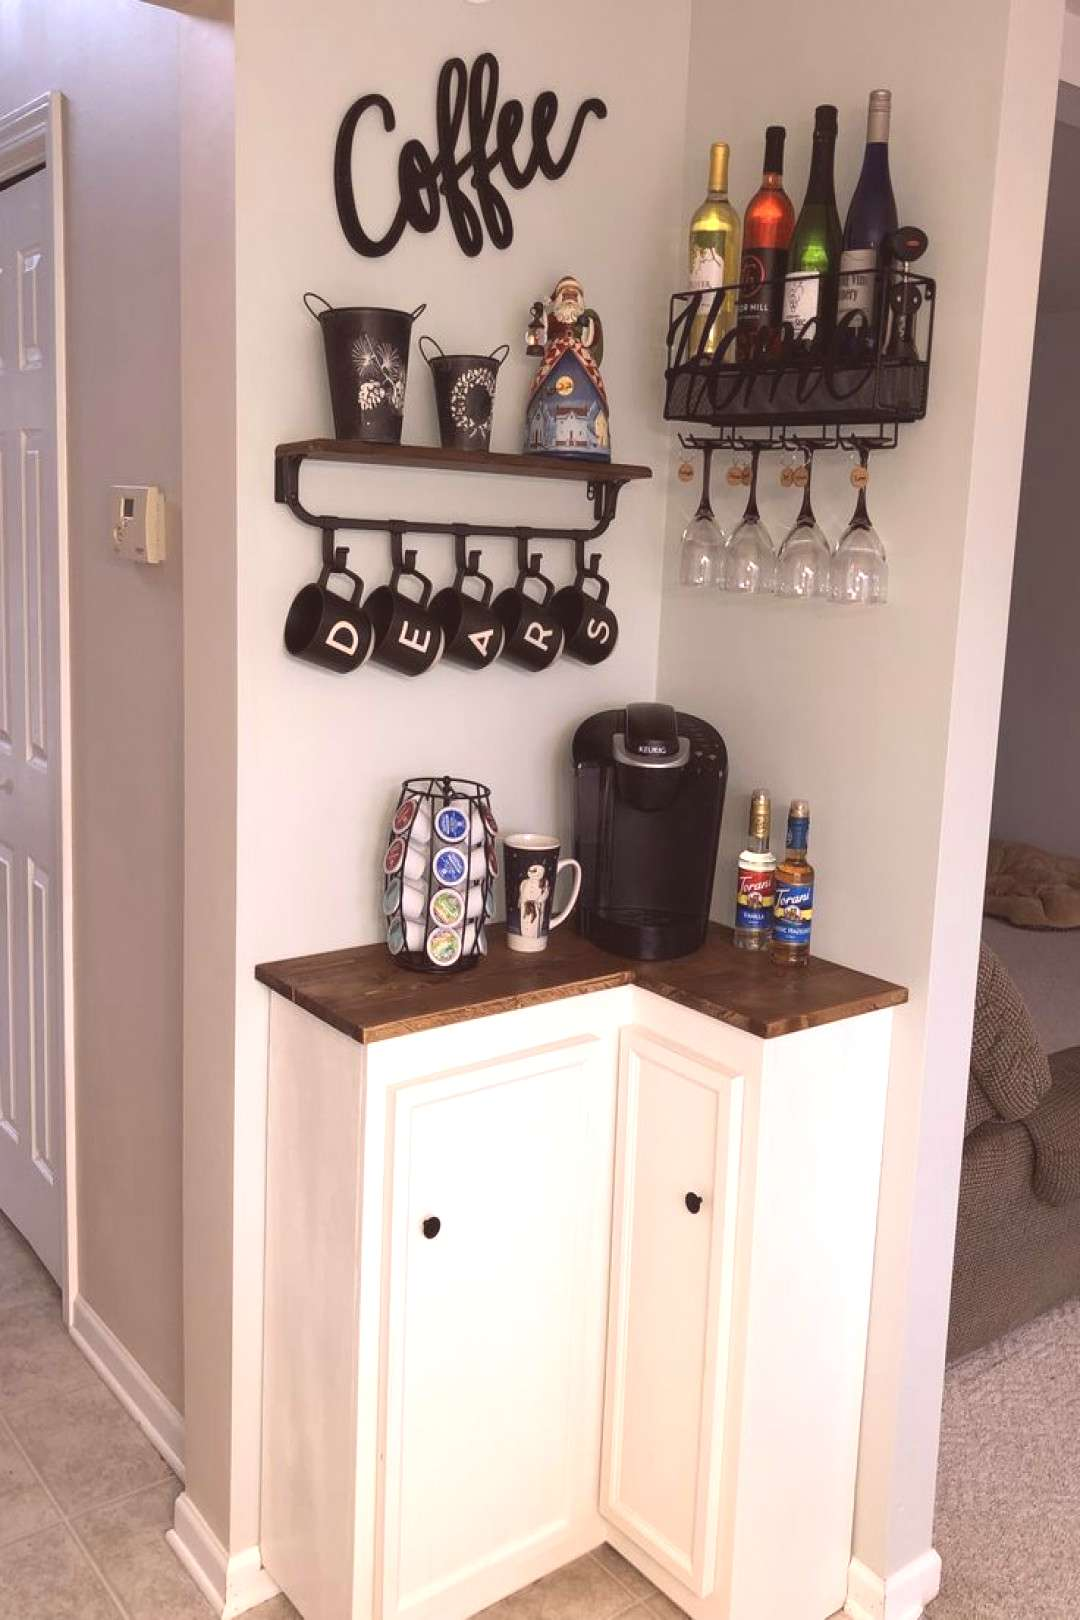 30+ Best Home Coffee Bar Ideas for All Coffee Lovers Are you looking for inspiration to design coff